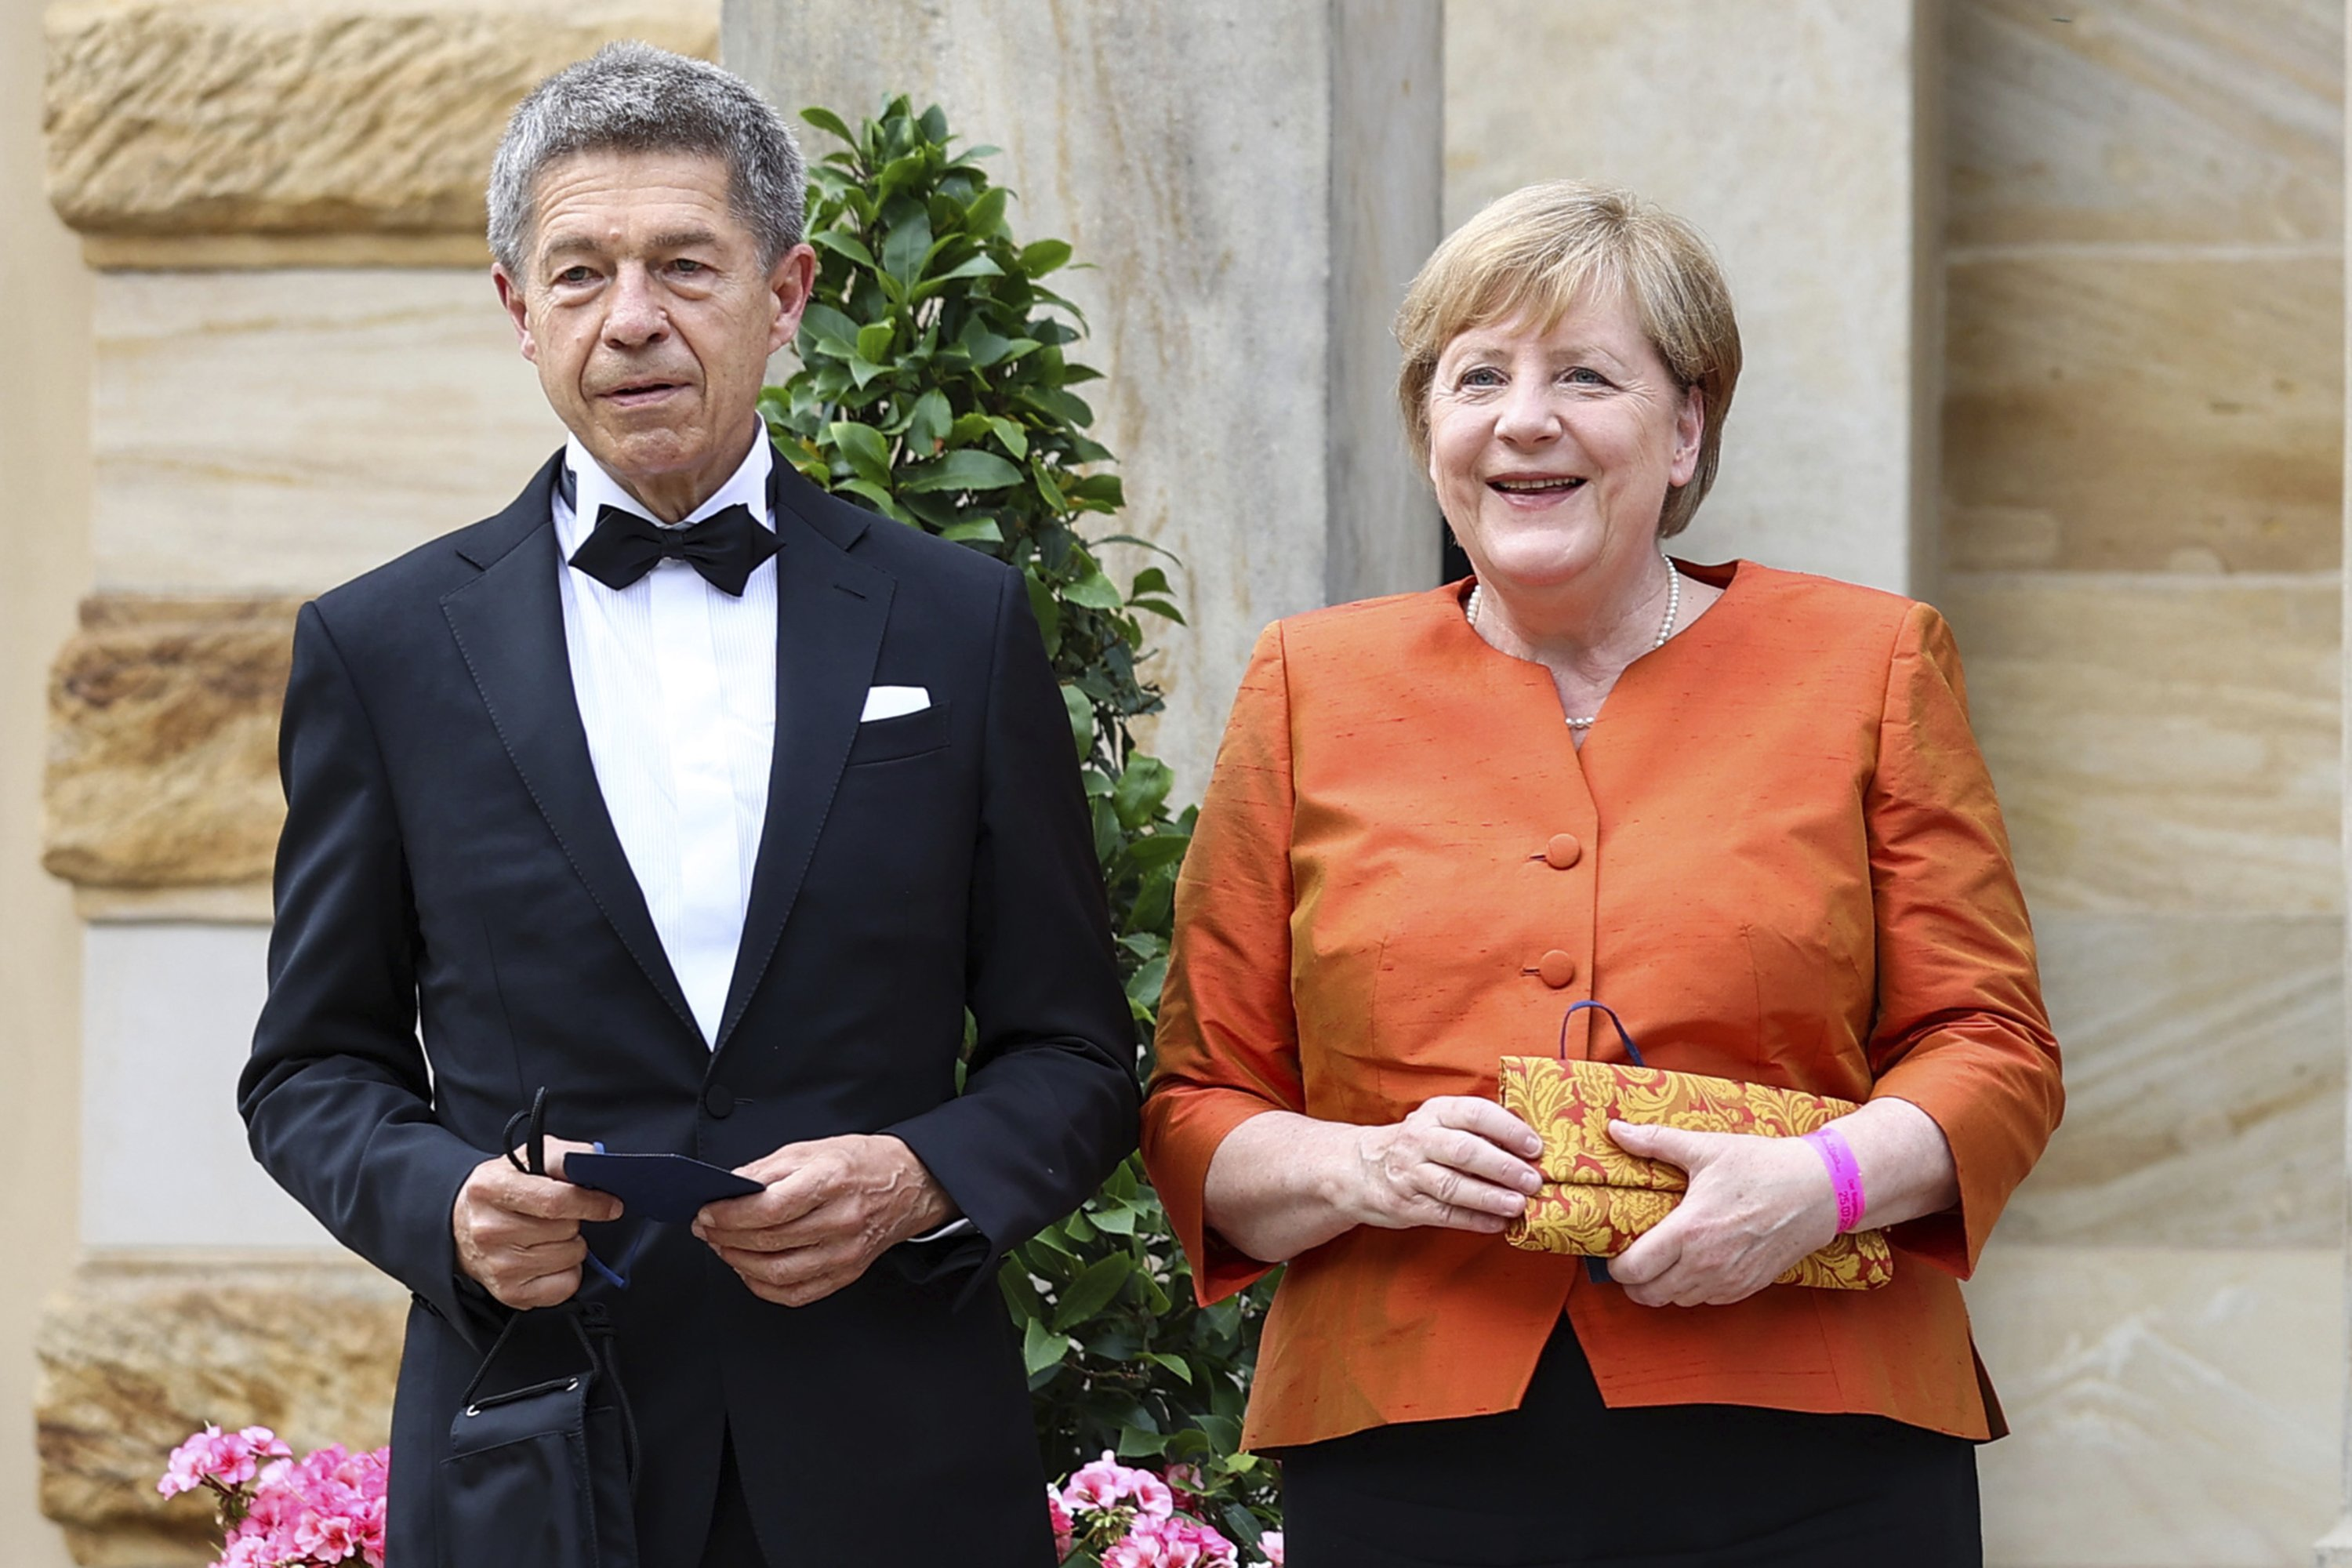 German Chancellor Angela Merkel and her husband Joachim Sauer arrive at the festival hall in Bayreuth, Germany, Sunday July 25, 2021.  (AP Photo)